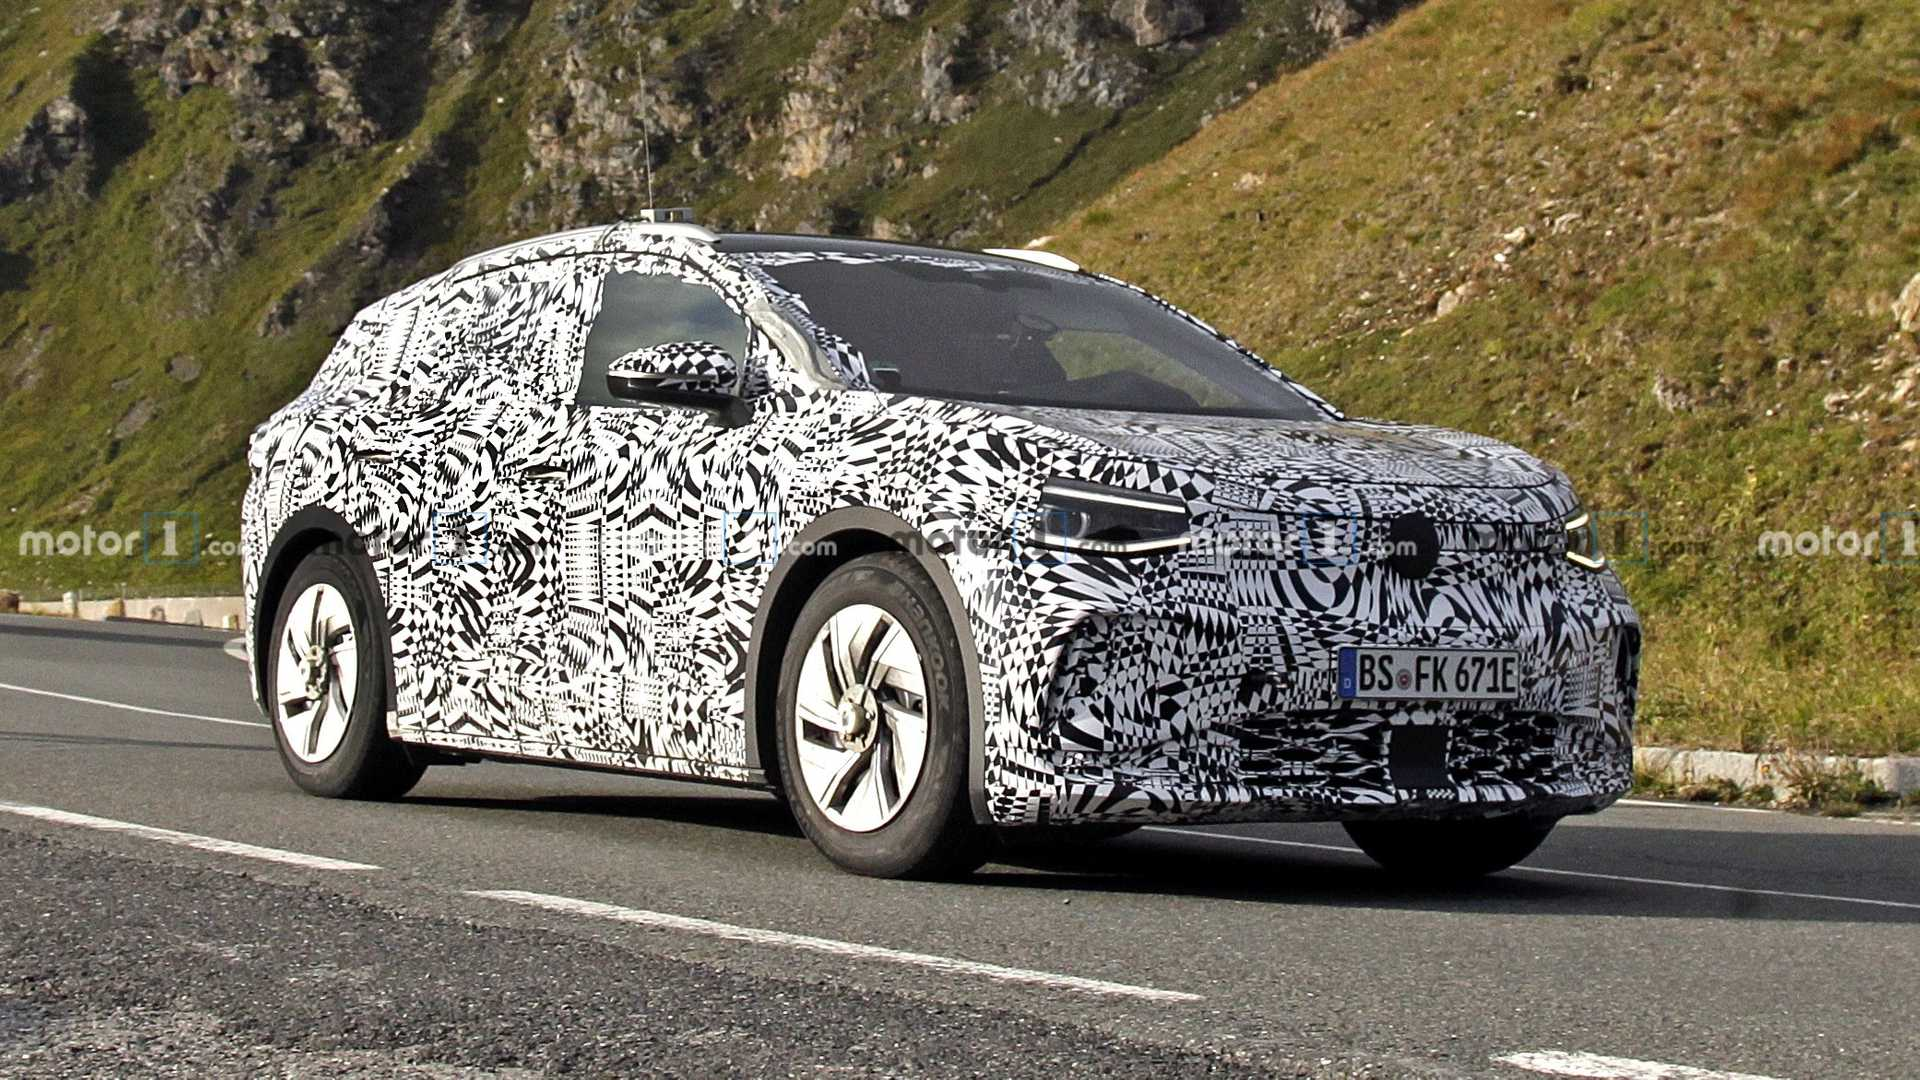 Spy Shots Show VW ID.4 Electric SUV We'll Get In The U.S.